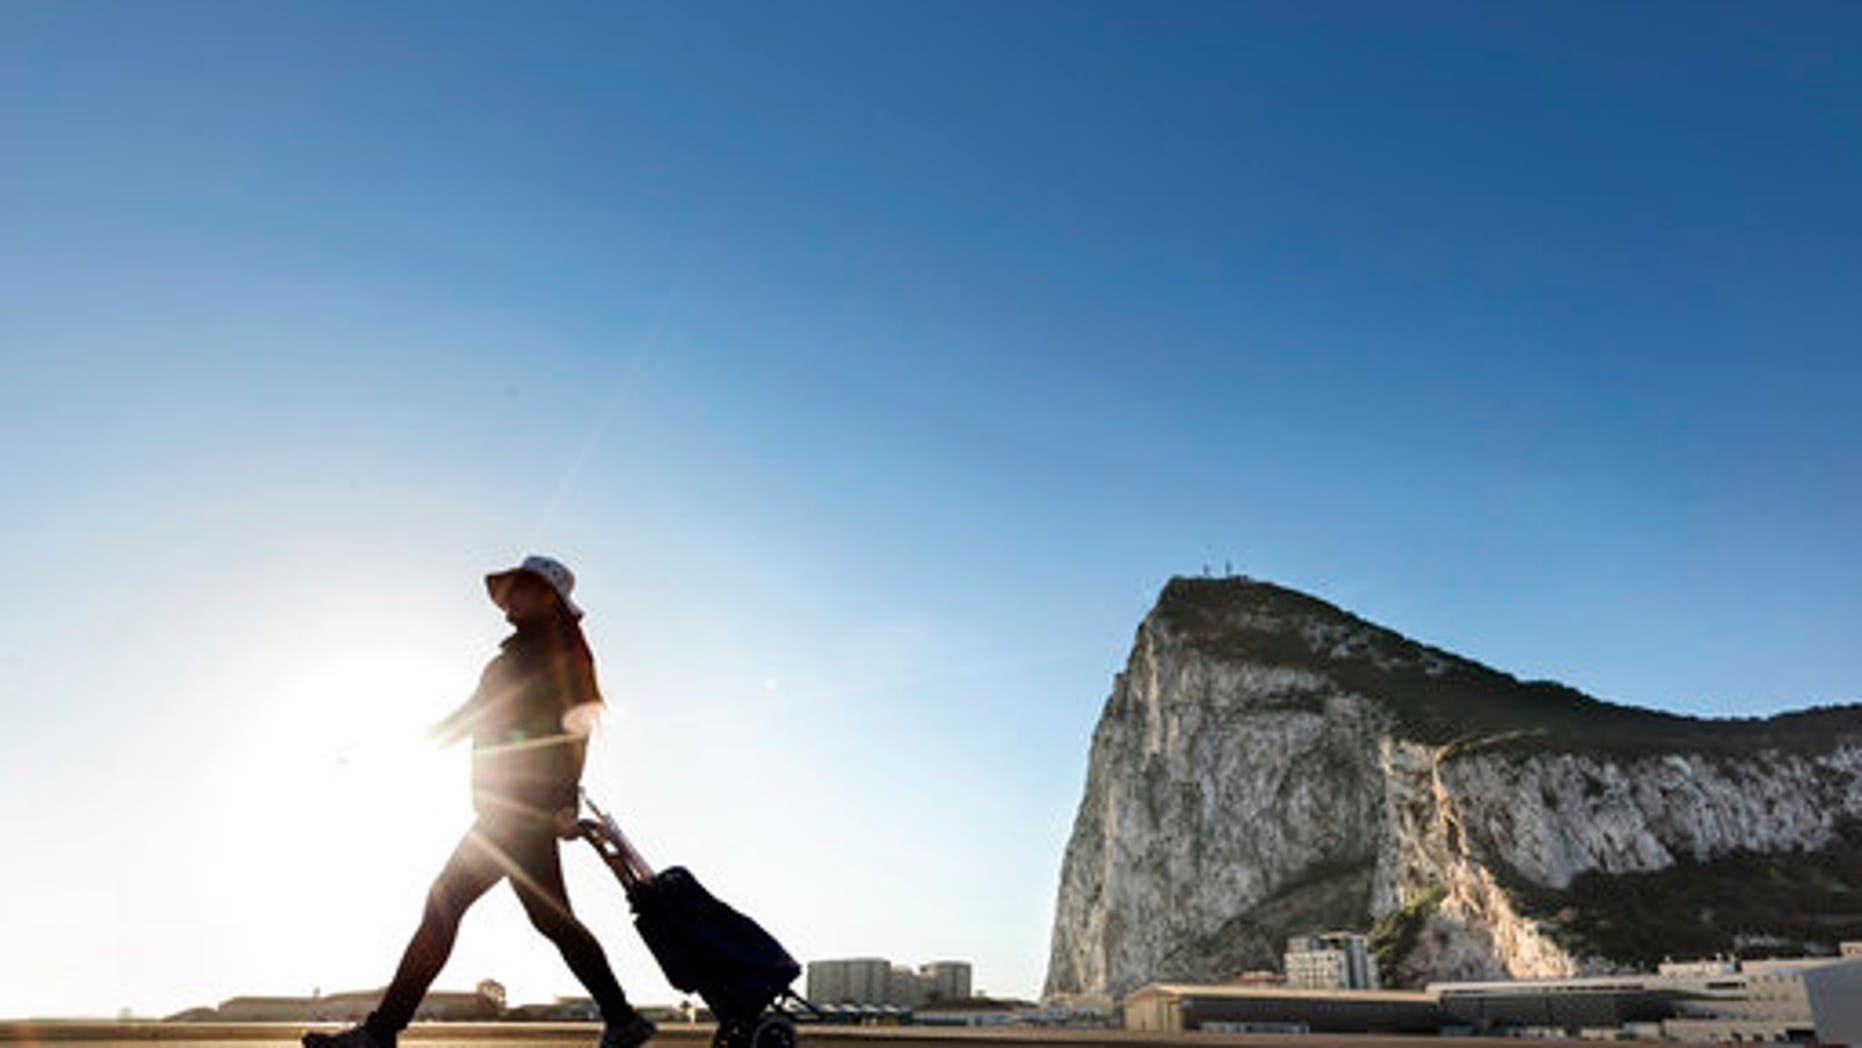 A woman walks on the Spanish side of the border between Spain and the British overseas territory of Gibraltar with the Rock as a background, in La Linea de la Concepcion, Southern Spain.